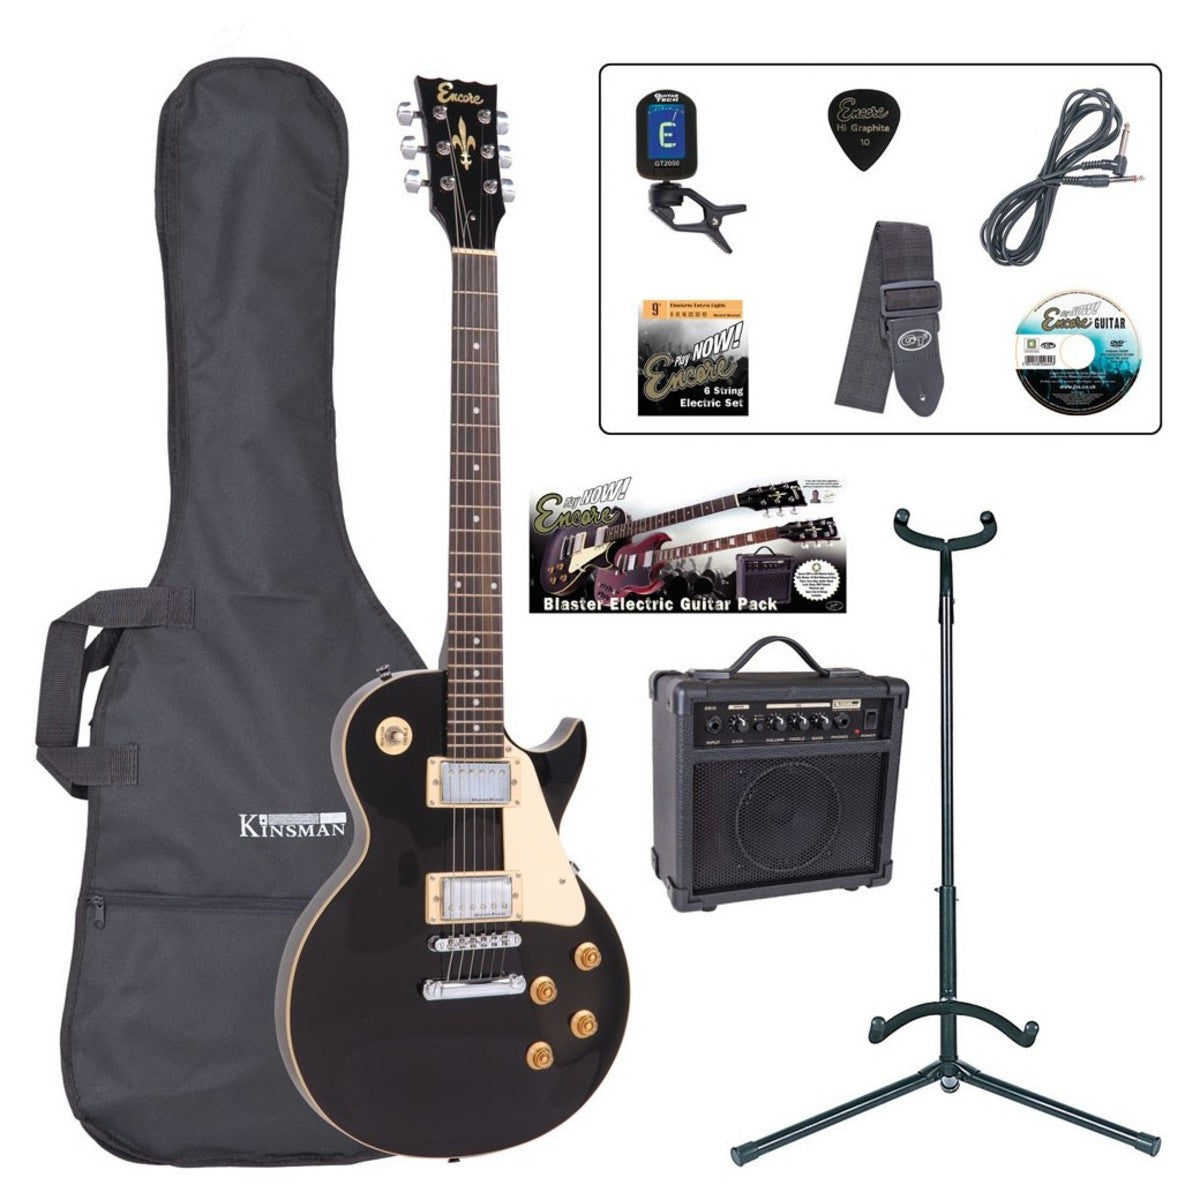 Encore E99 Electric Guitar Outfit (various colours)